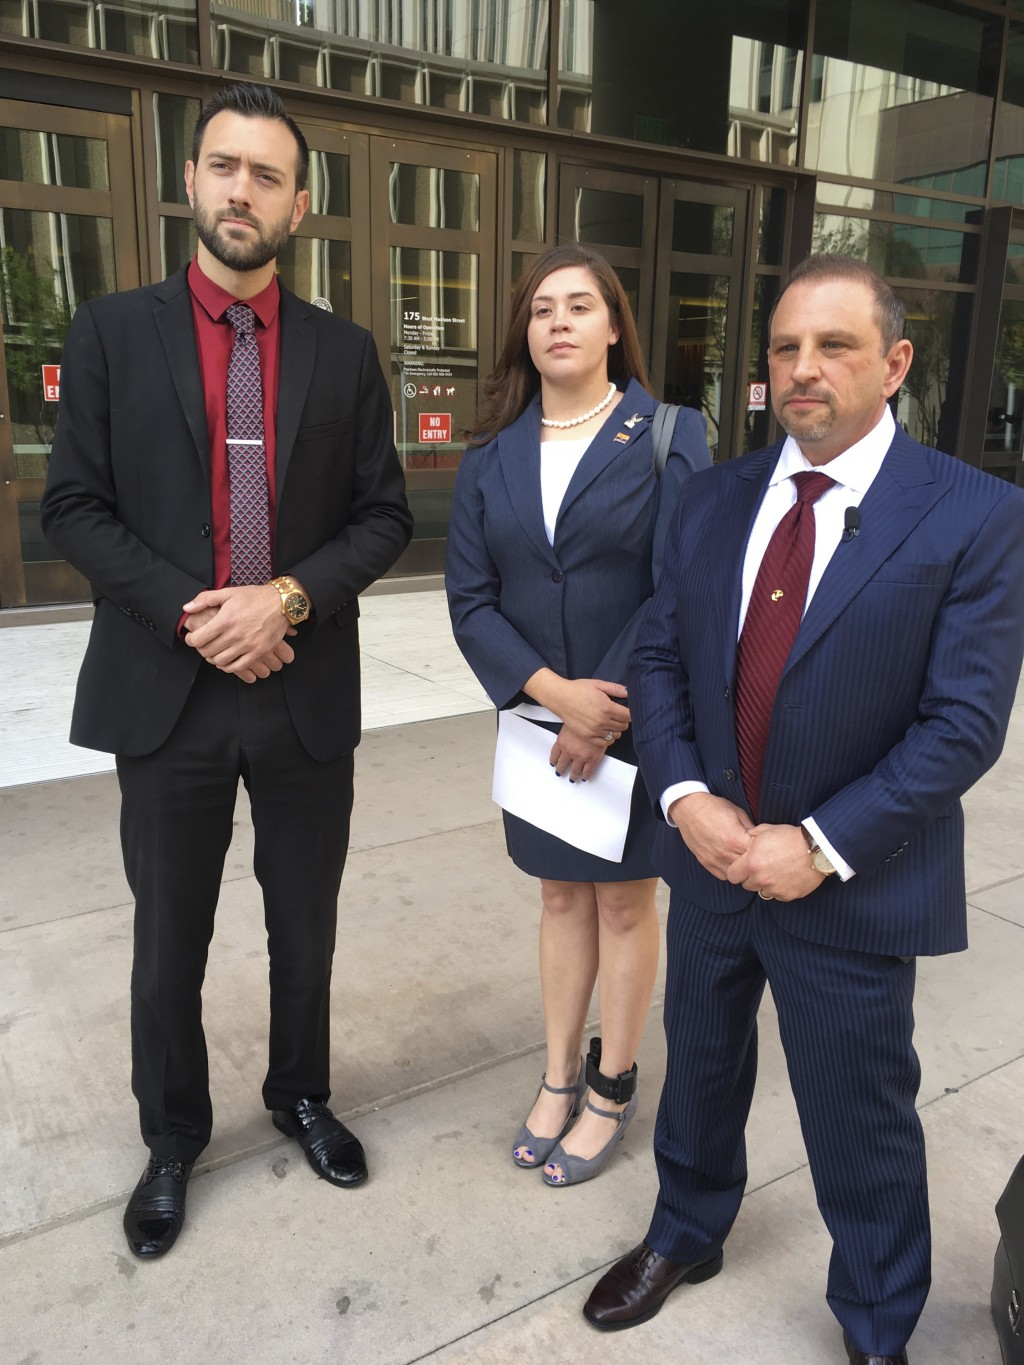 FILE - In this March 29, 2018 file photo, 32-year-old Tahnee Gonzales of Glendale, Arizona, stands next to her attorneys Marc Victor, right, and Andre...